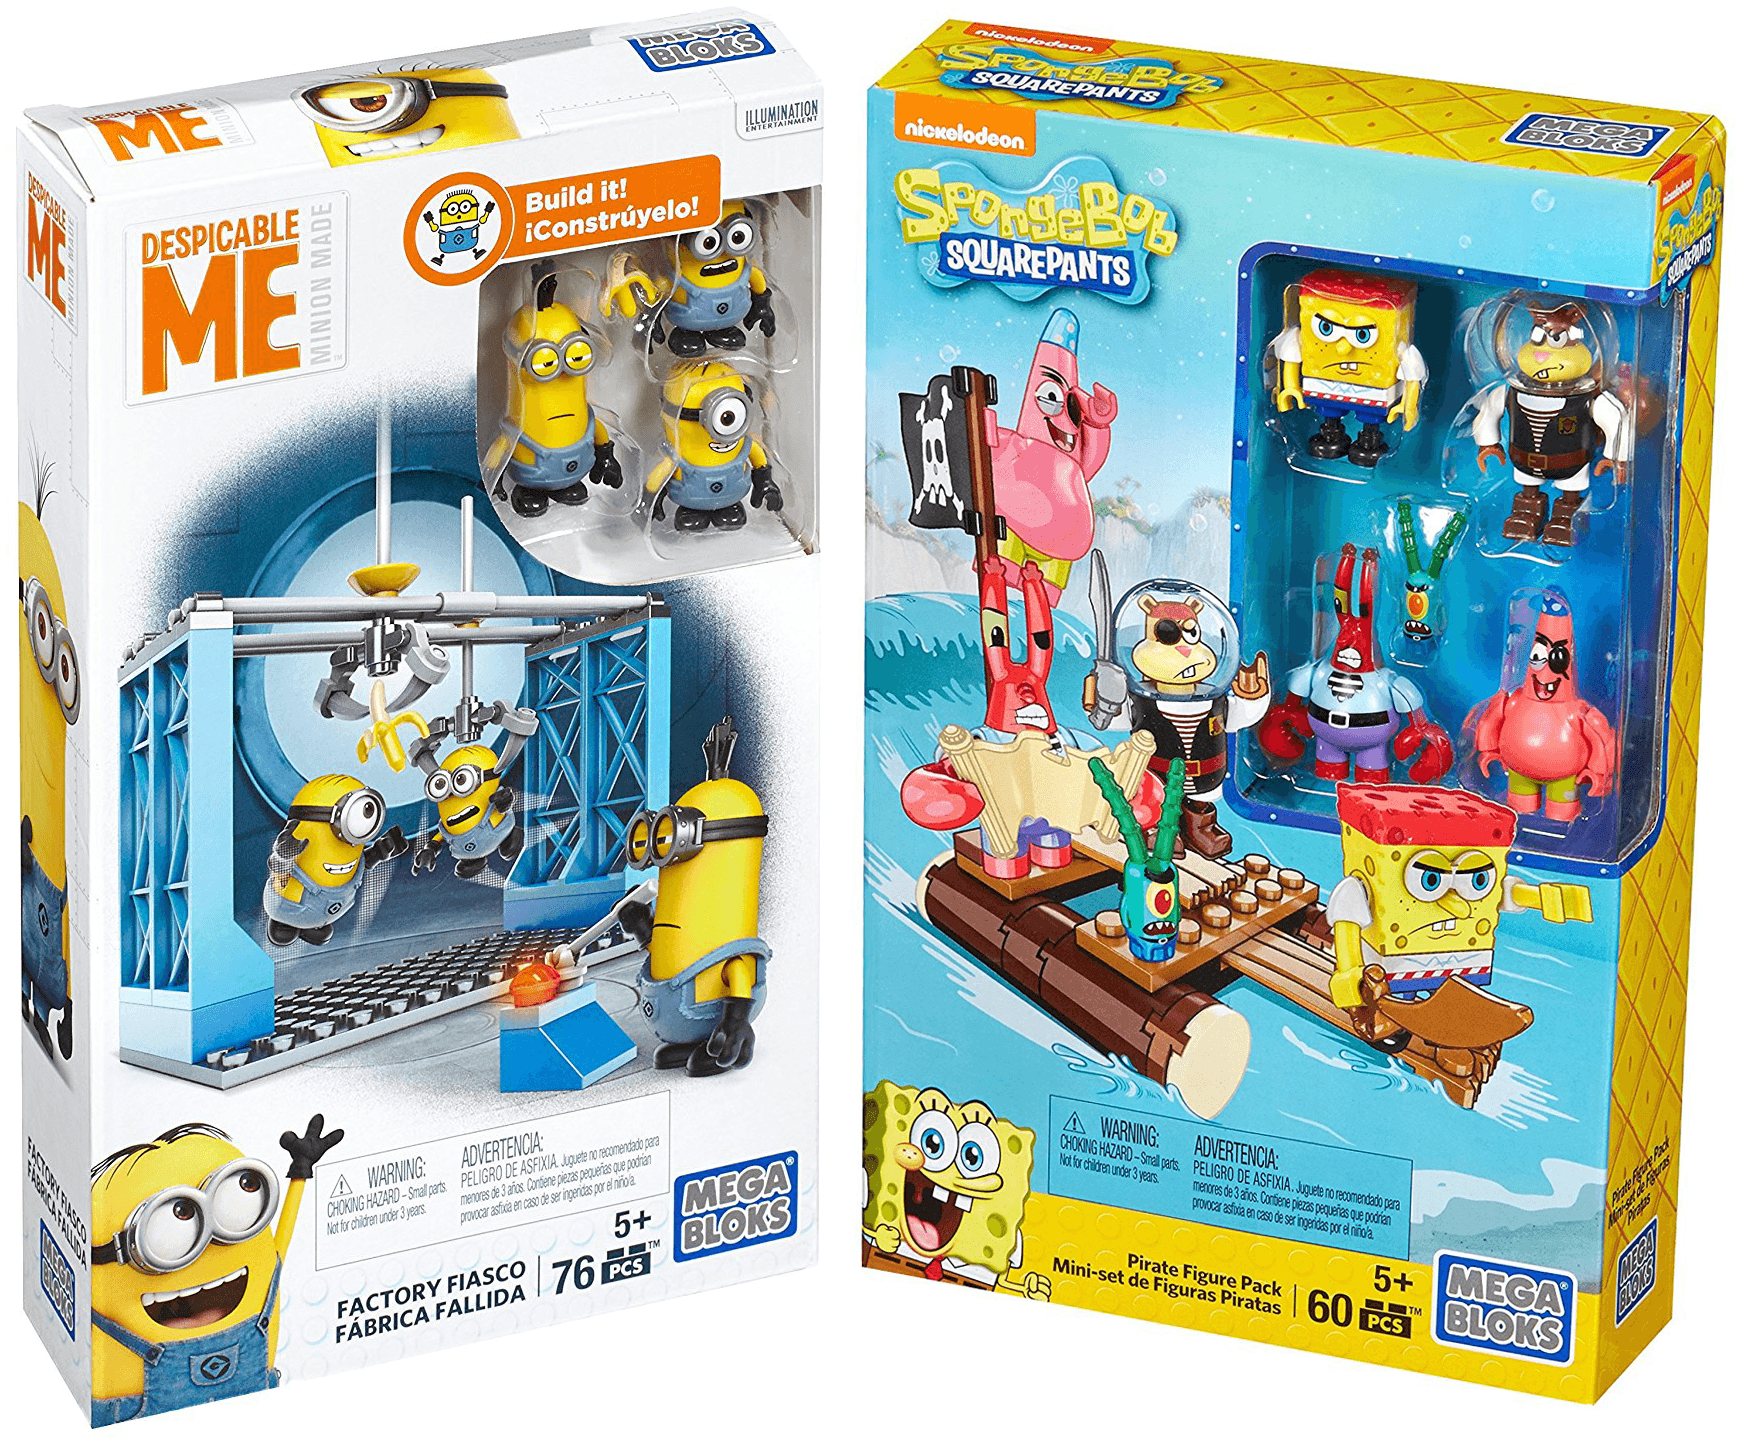 Mega Bloks Figure Despicable Me Minions Factory Fiasco + Spongebob Squarepants Pirate Pack... by